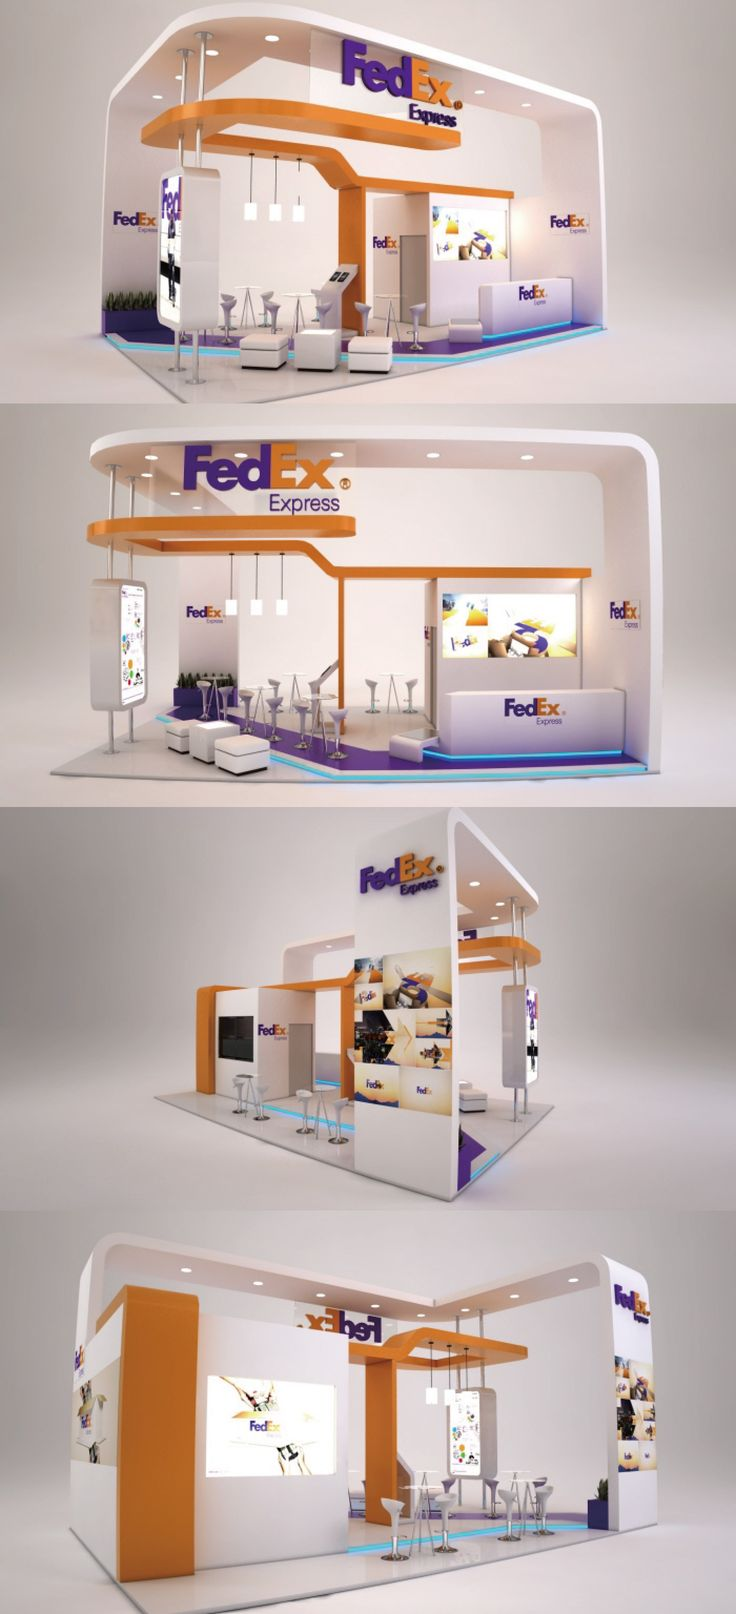 D Exhibition Layout : Best exhibition stands ideas on pinterest